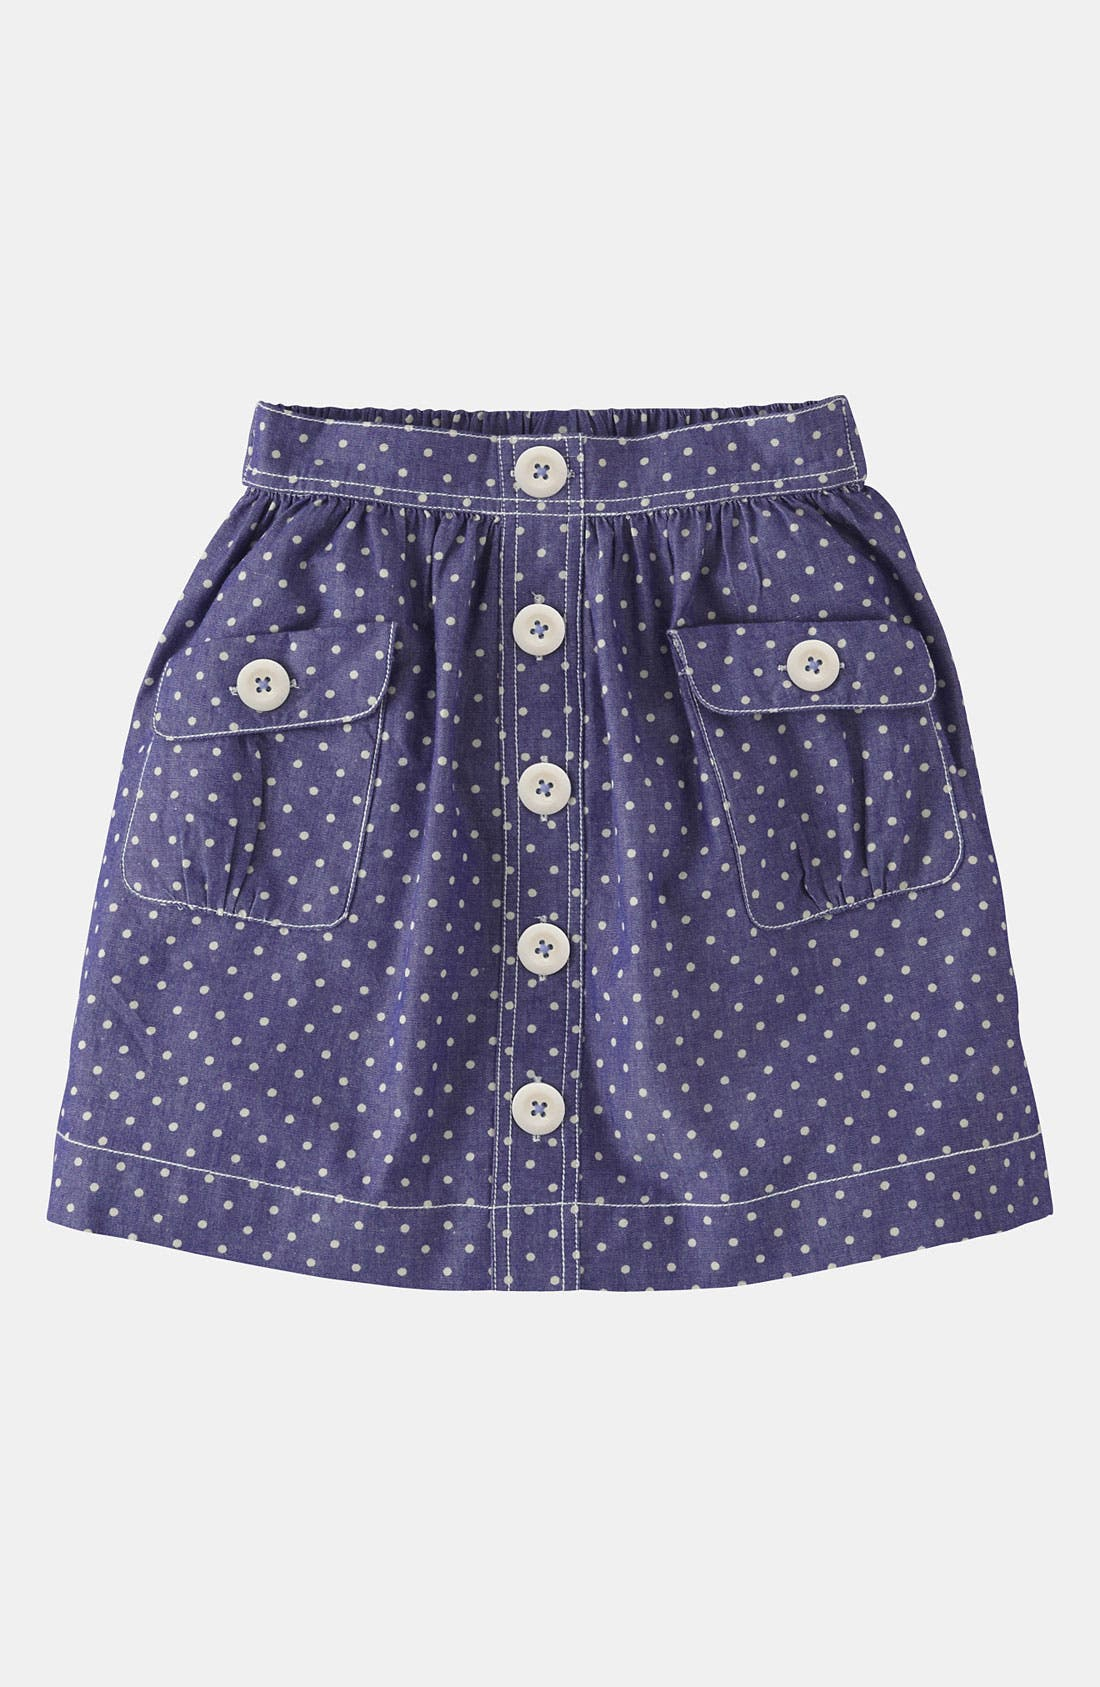 Main Image - Mini Boden 'Spotty' Chambray Skirt (Little Girls & Big Girls)